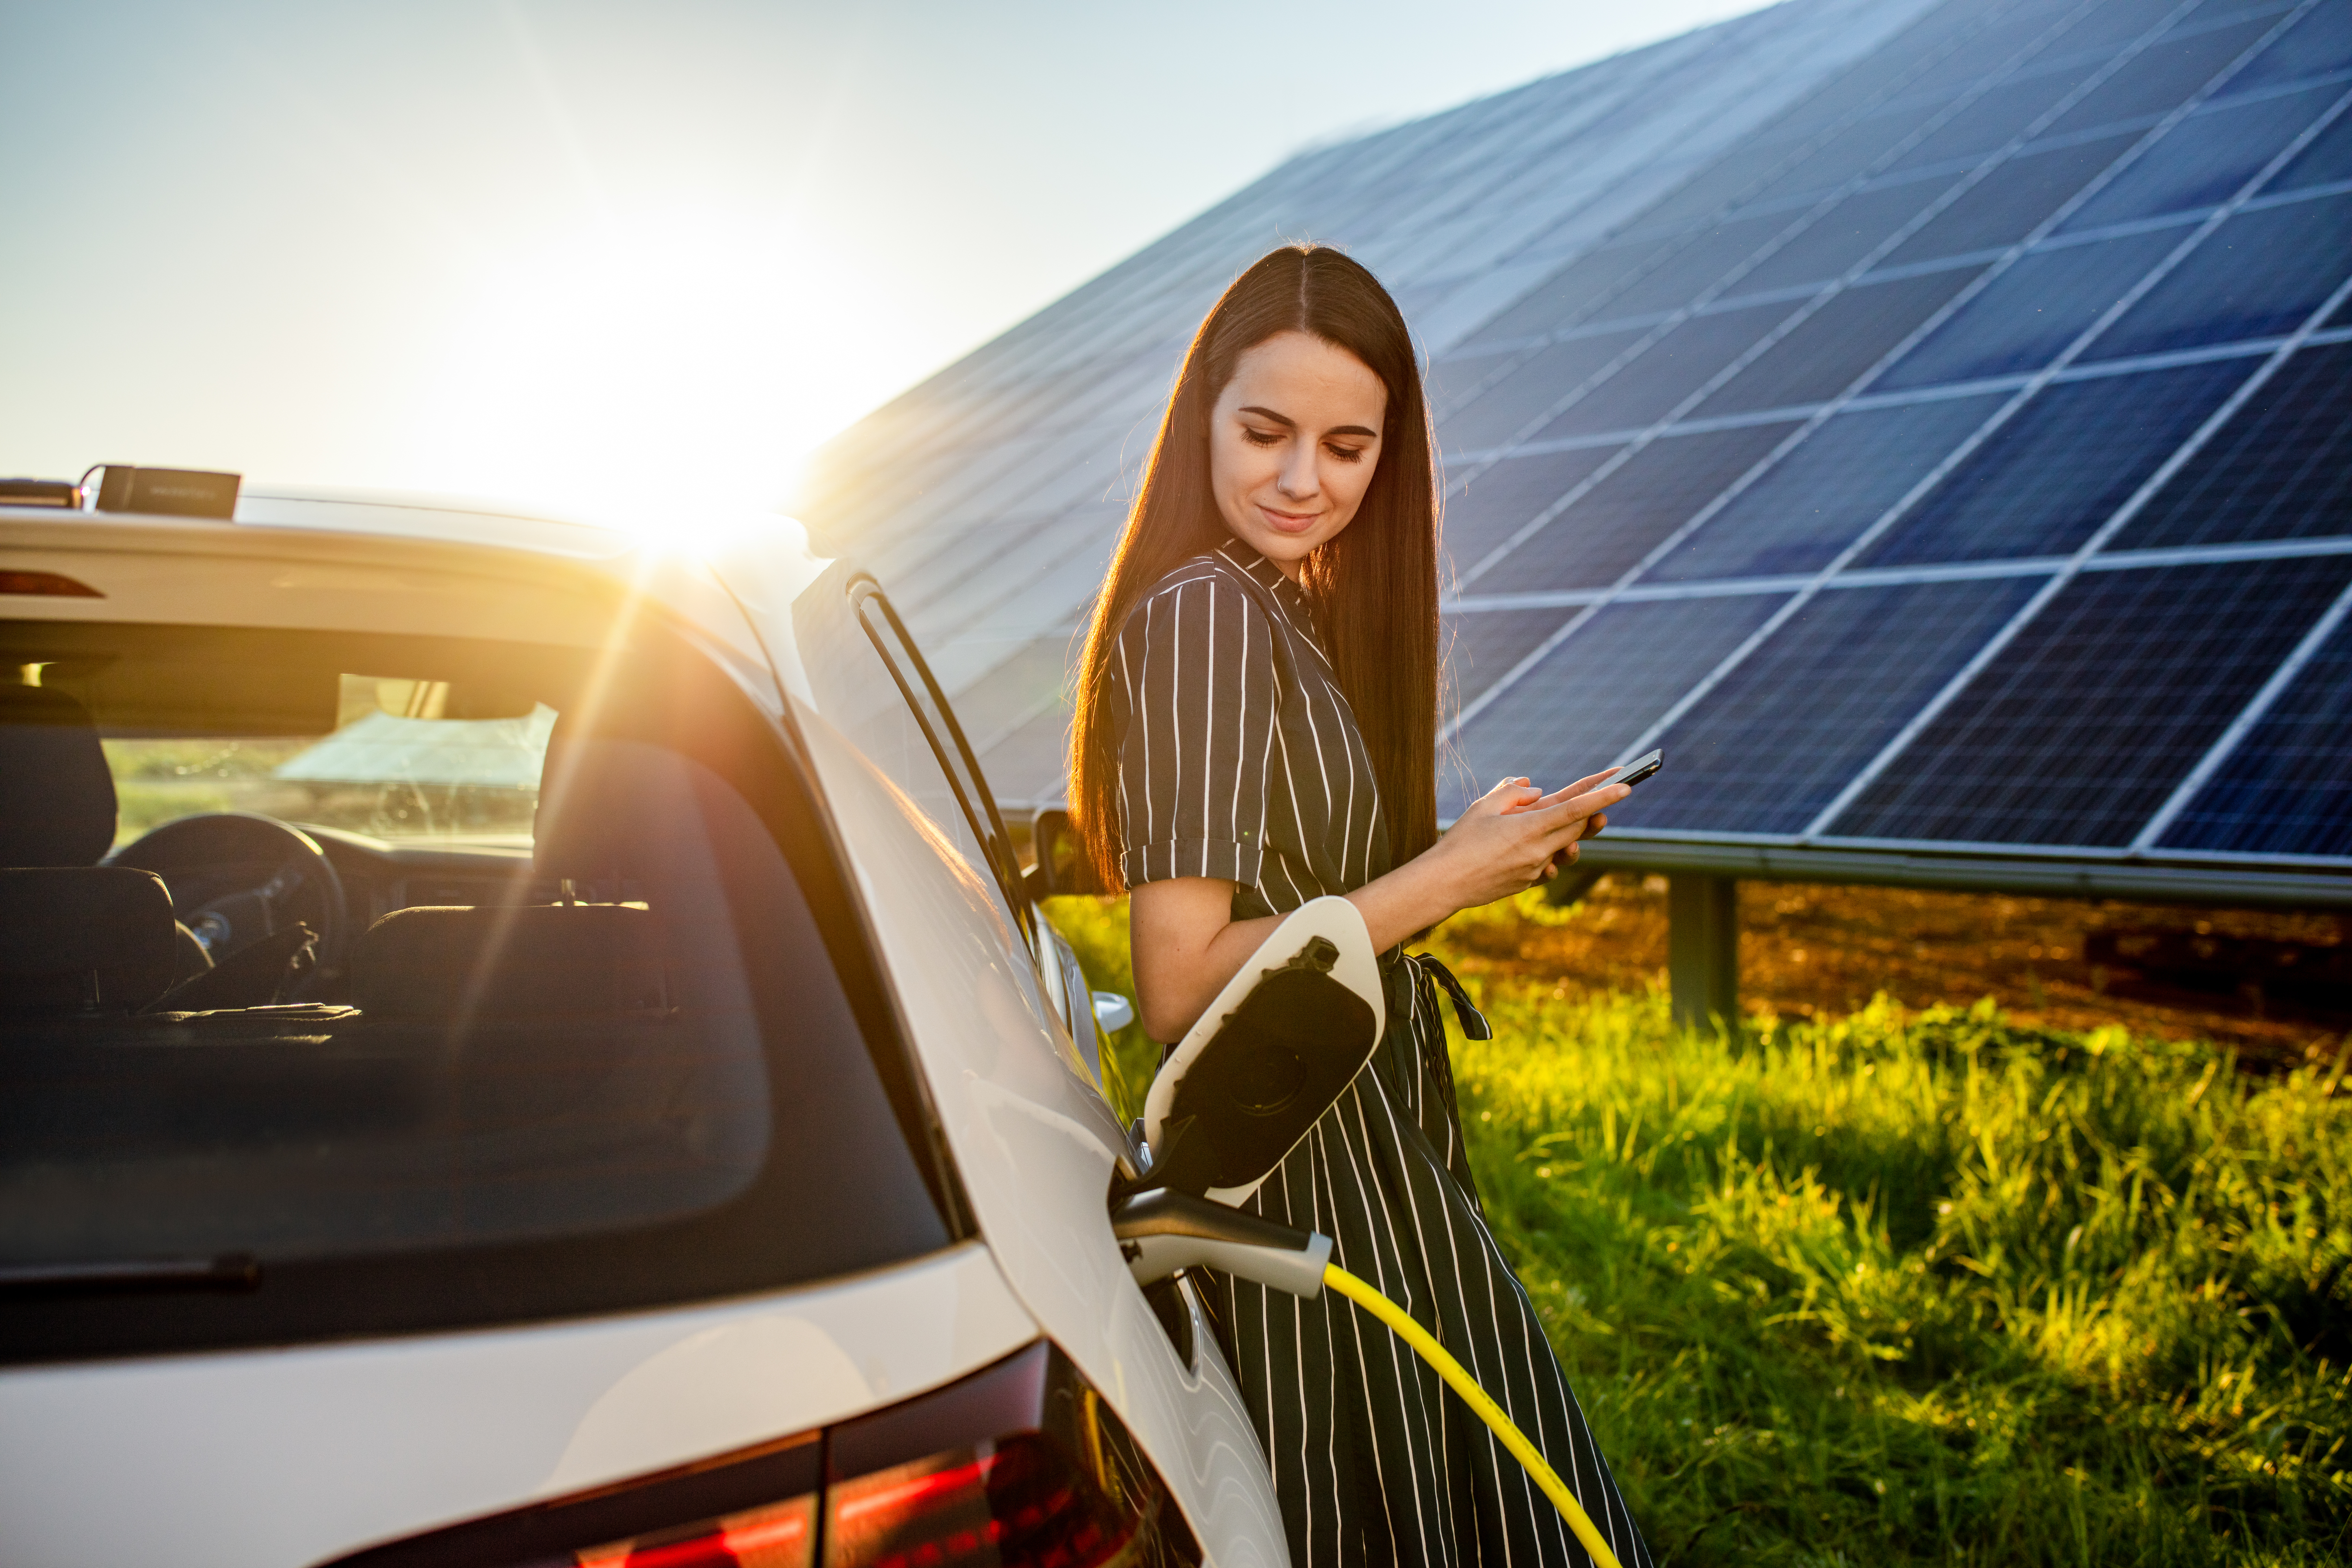 Woman waiting for electric car to charge and solar panels in background